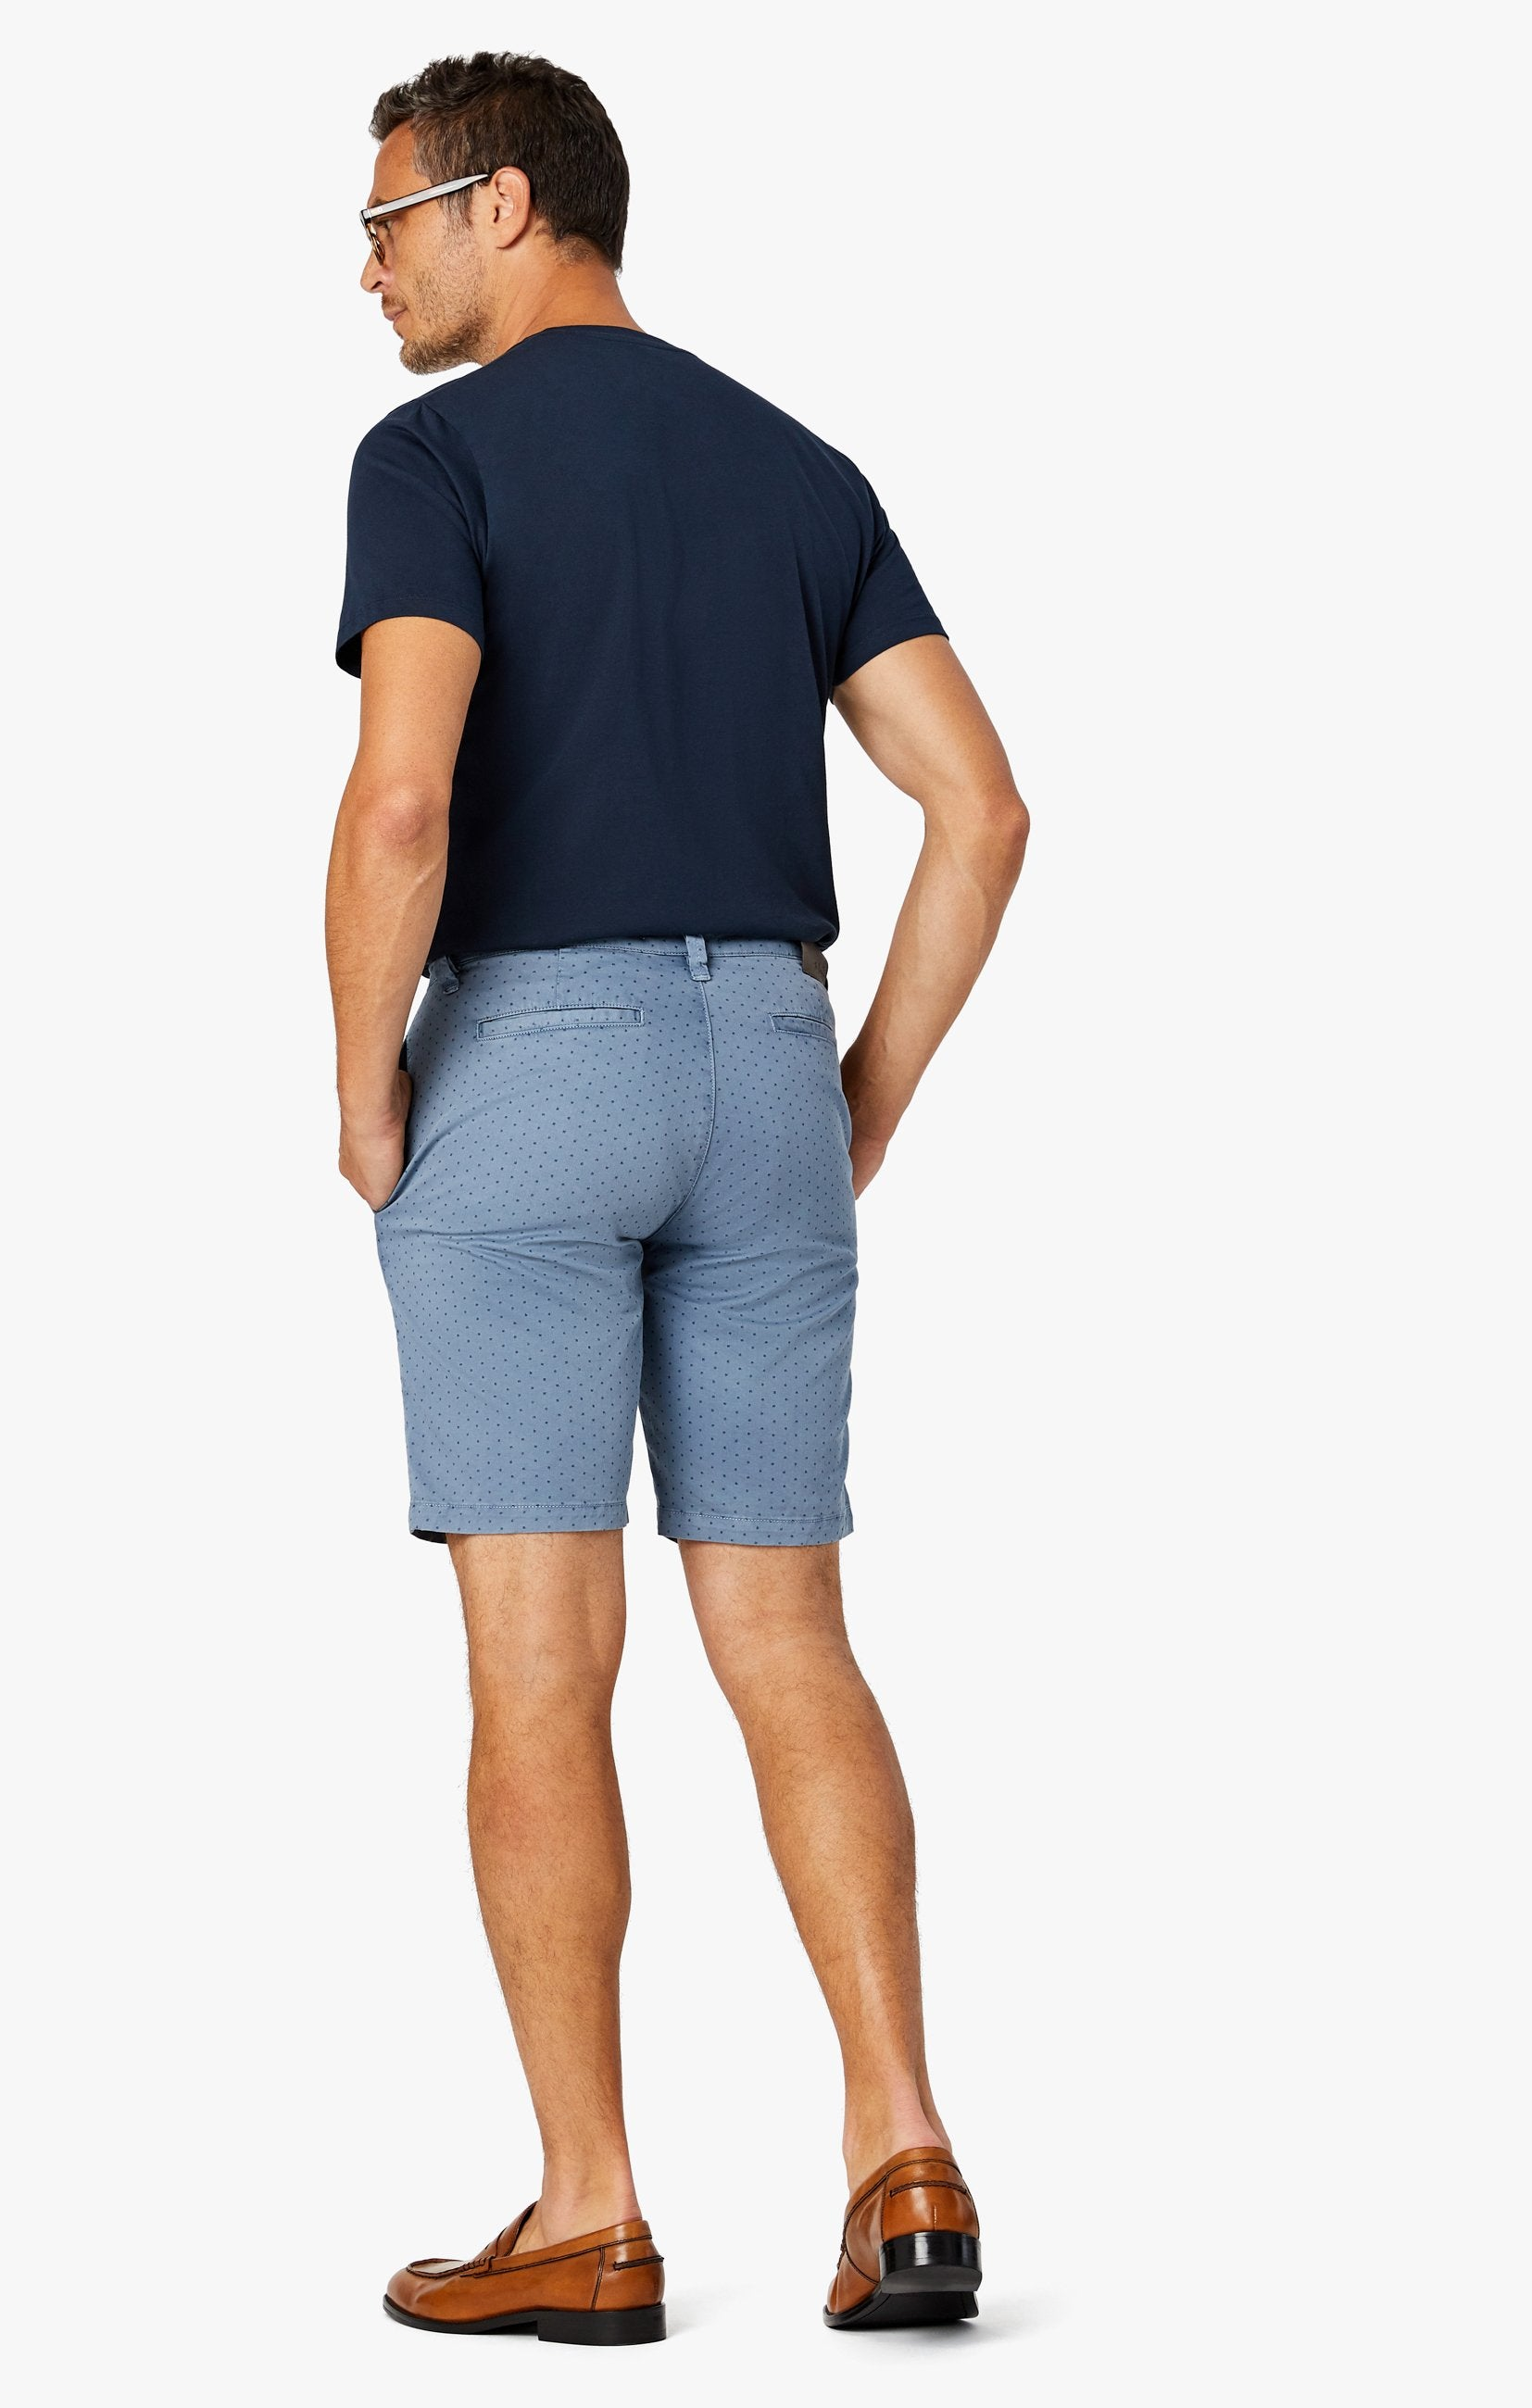 Arizona Slim Shorts in Blue Fancy Image 9